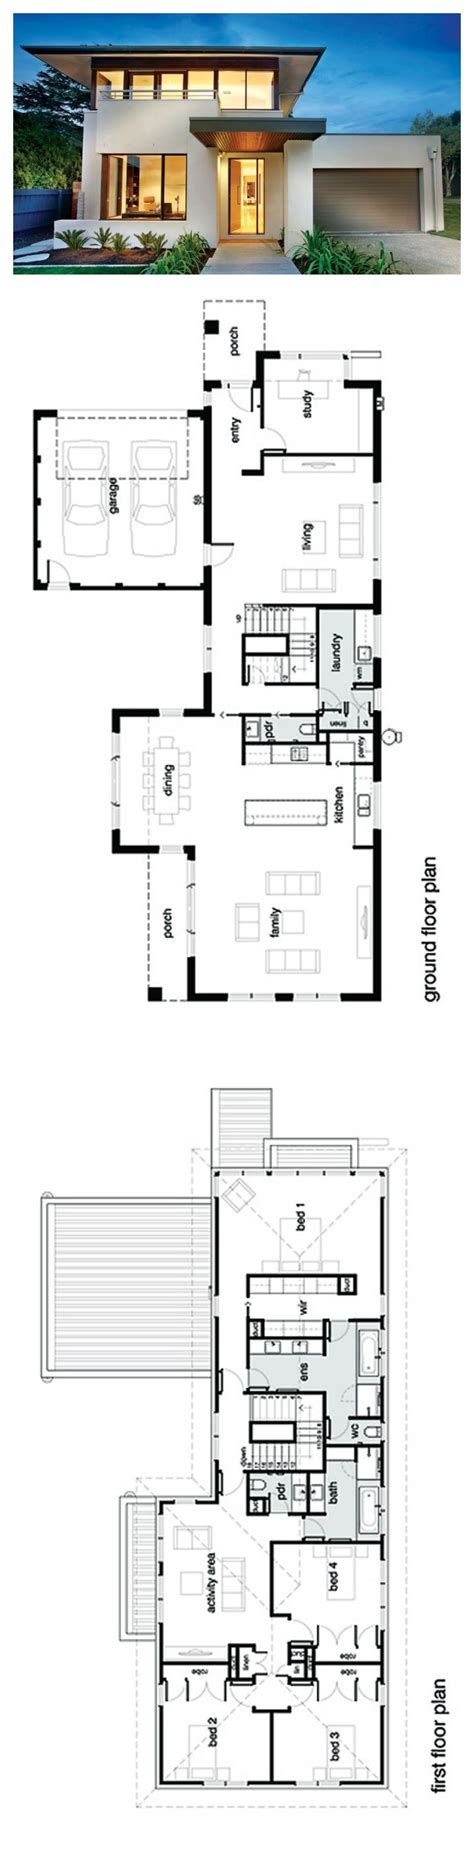 modern home design plans best 25 modern house plans ideas on pinterest